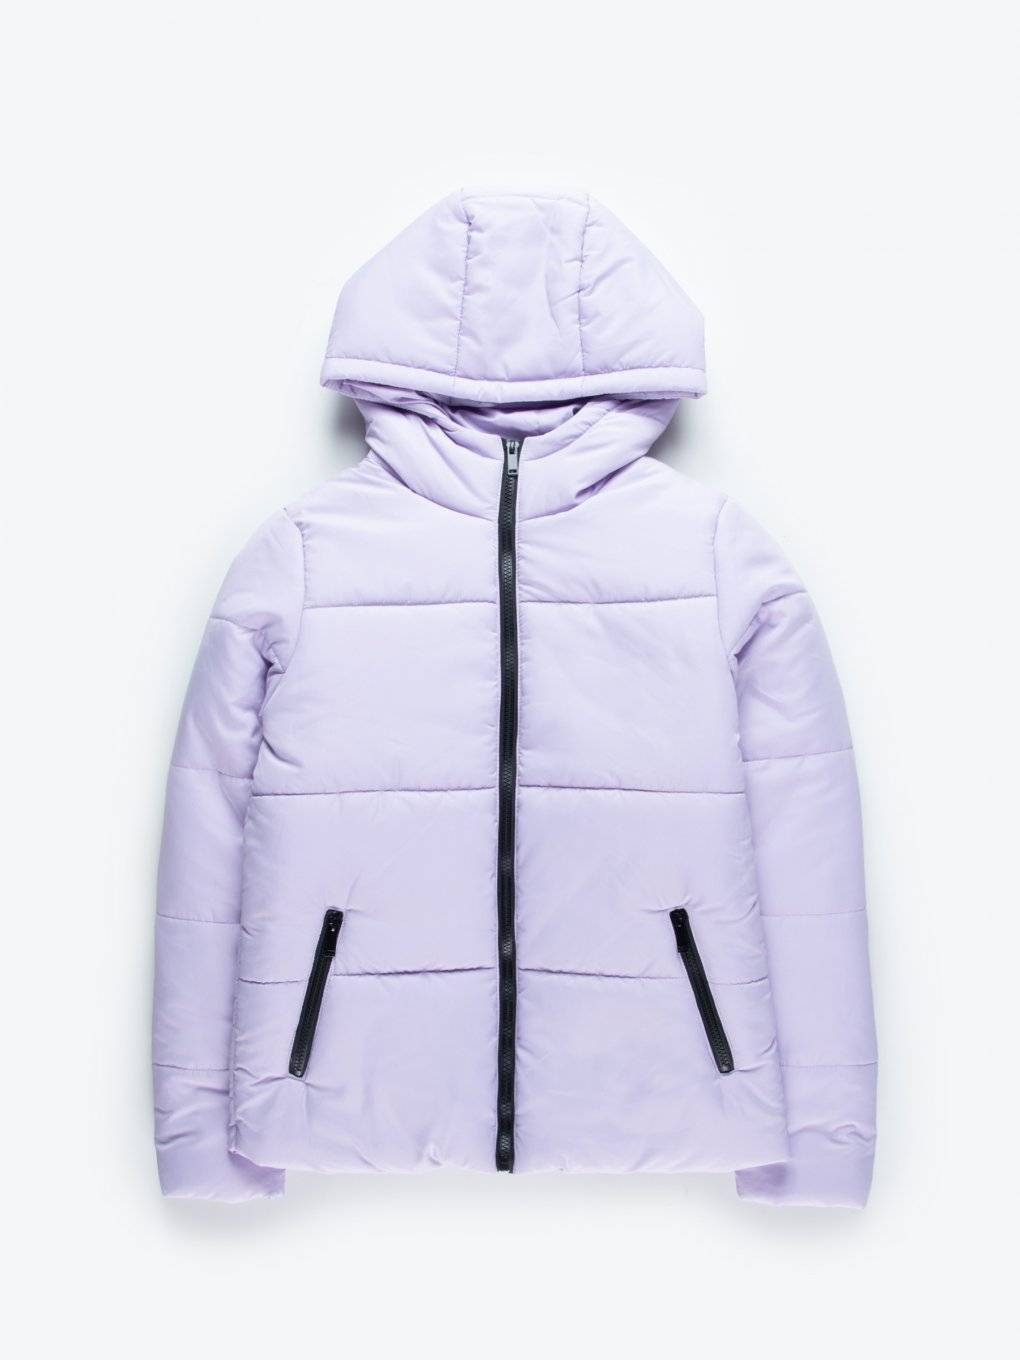 Plain puffer jacket with hood